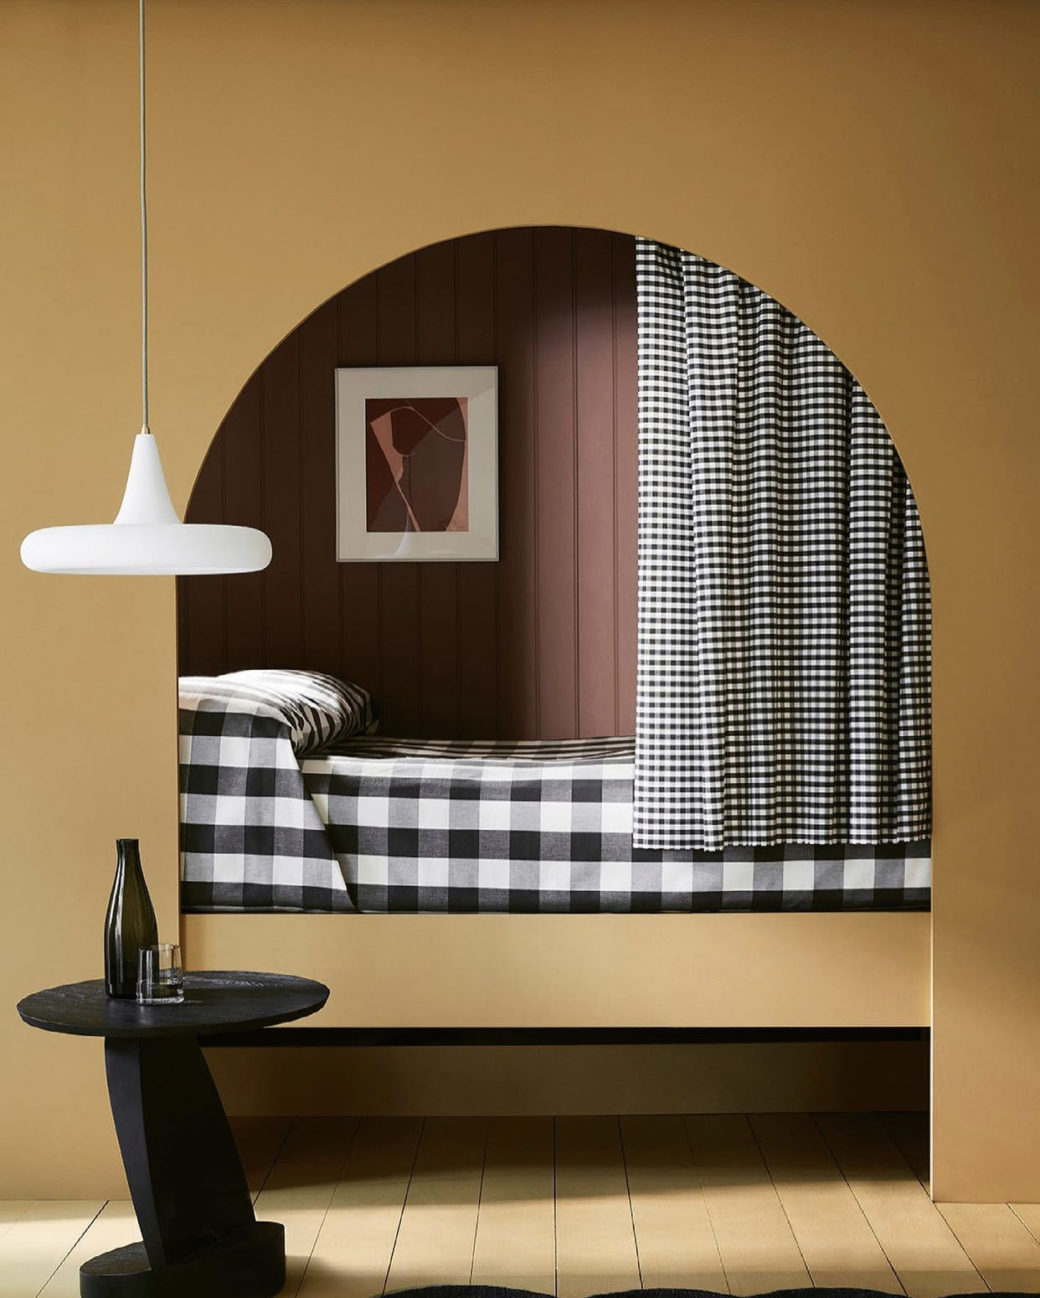 tobacco coloured built in bed with arch and large gingham check bedlinen in black and white.